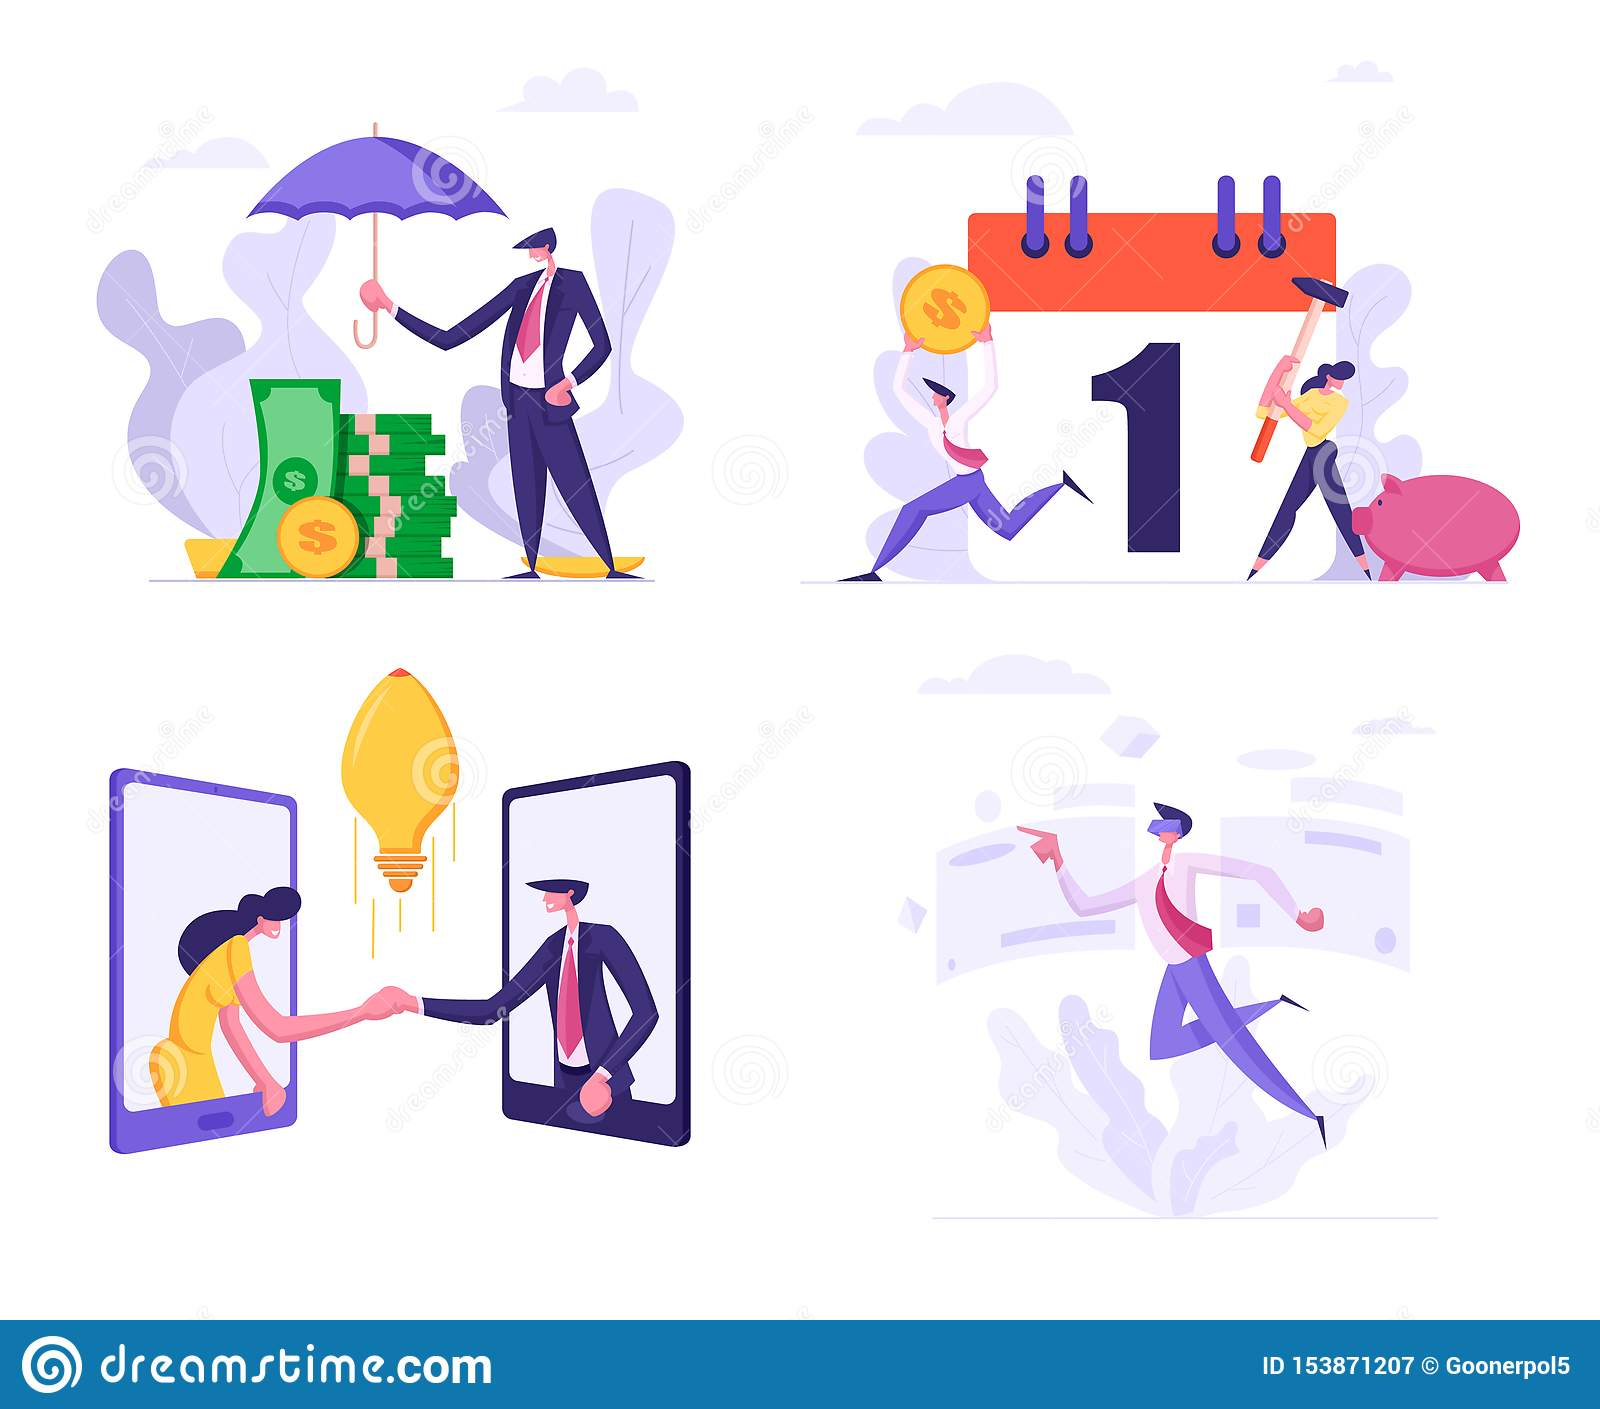 Set Business Man Cover Heap of Banknotes Money with Umbrella, People Break Piggy Bank for Tax Payment Schedule